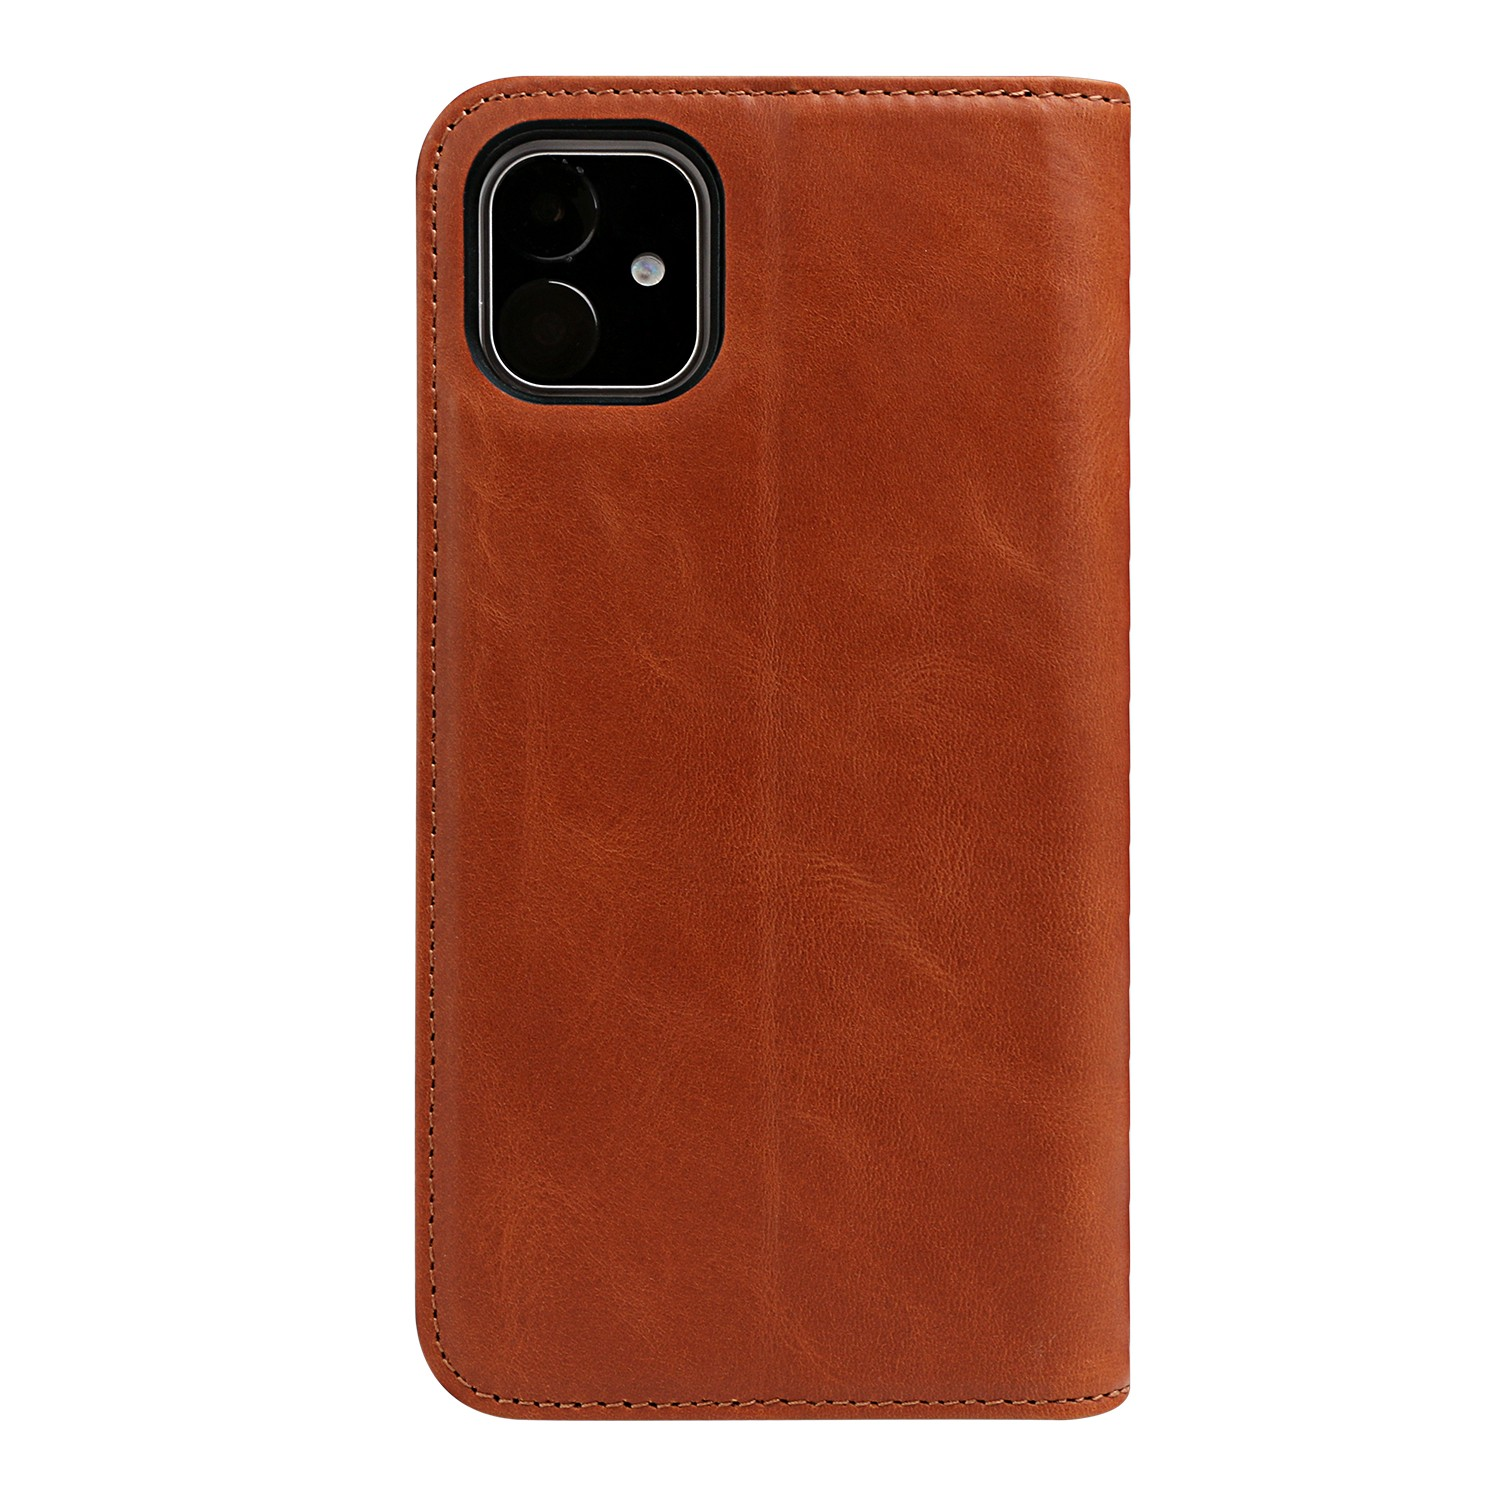 good quality mobile back cover for iPhone 11 on sale for iPhone-2